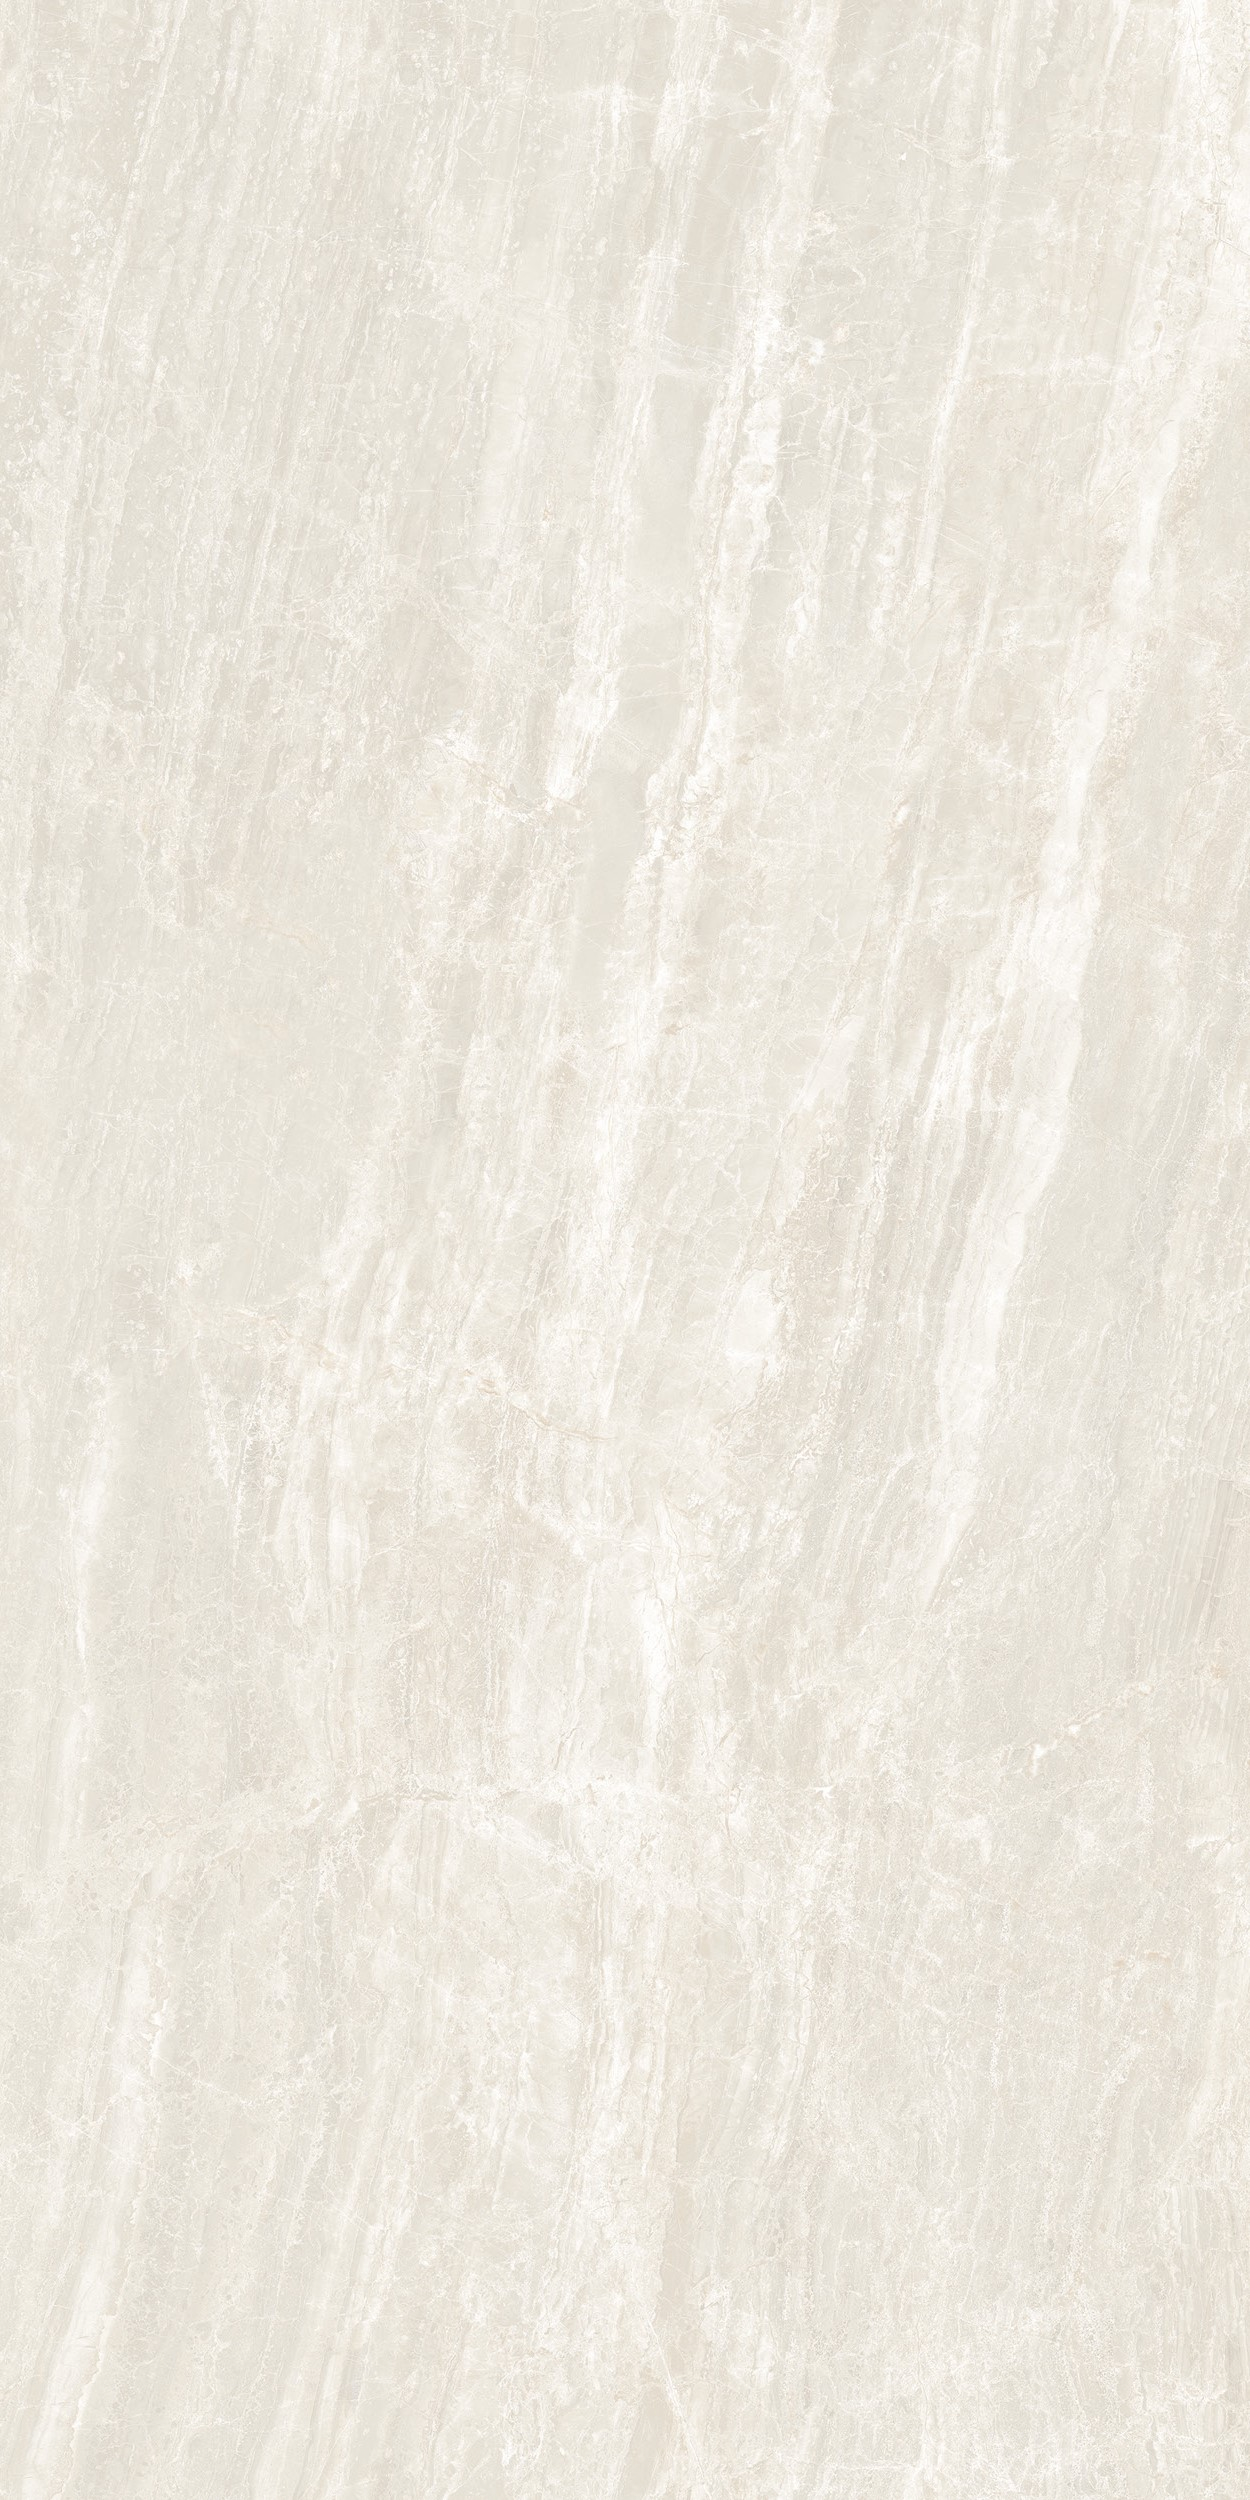 32 X 72 Cosmic White High Polished Rectified Porcelain Tile (SPECIAL ORDER ONLY)